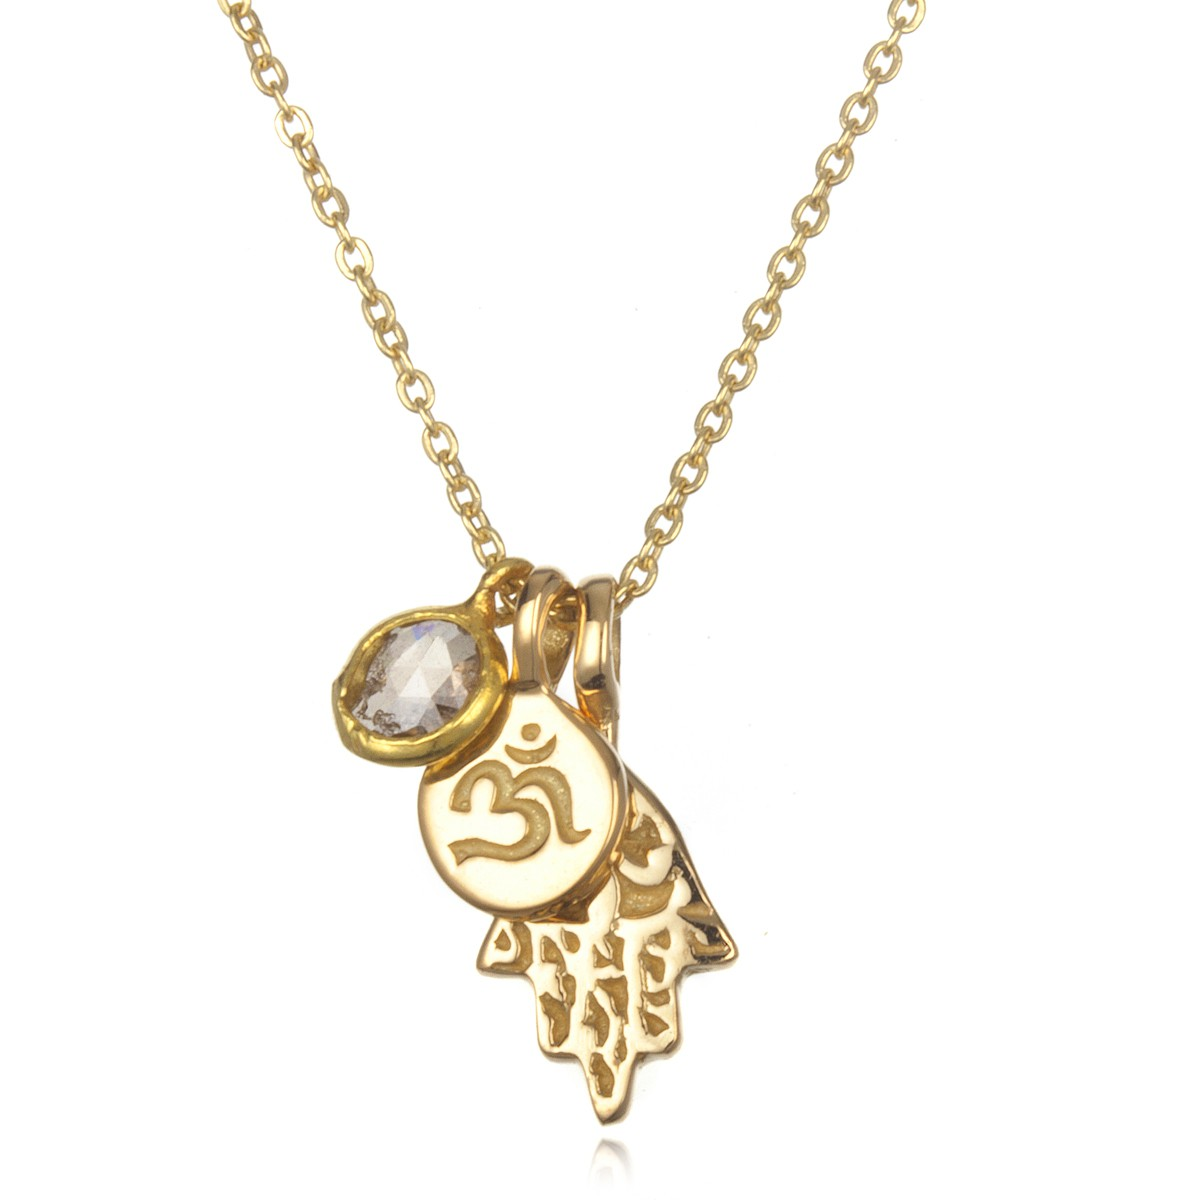 18kt gold hamsa and om necklace with pendant